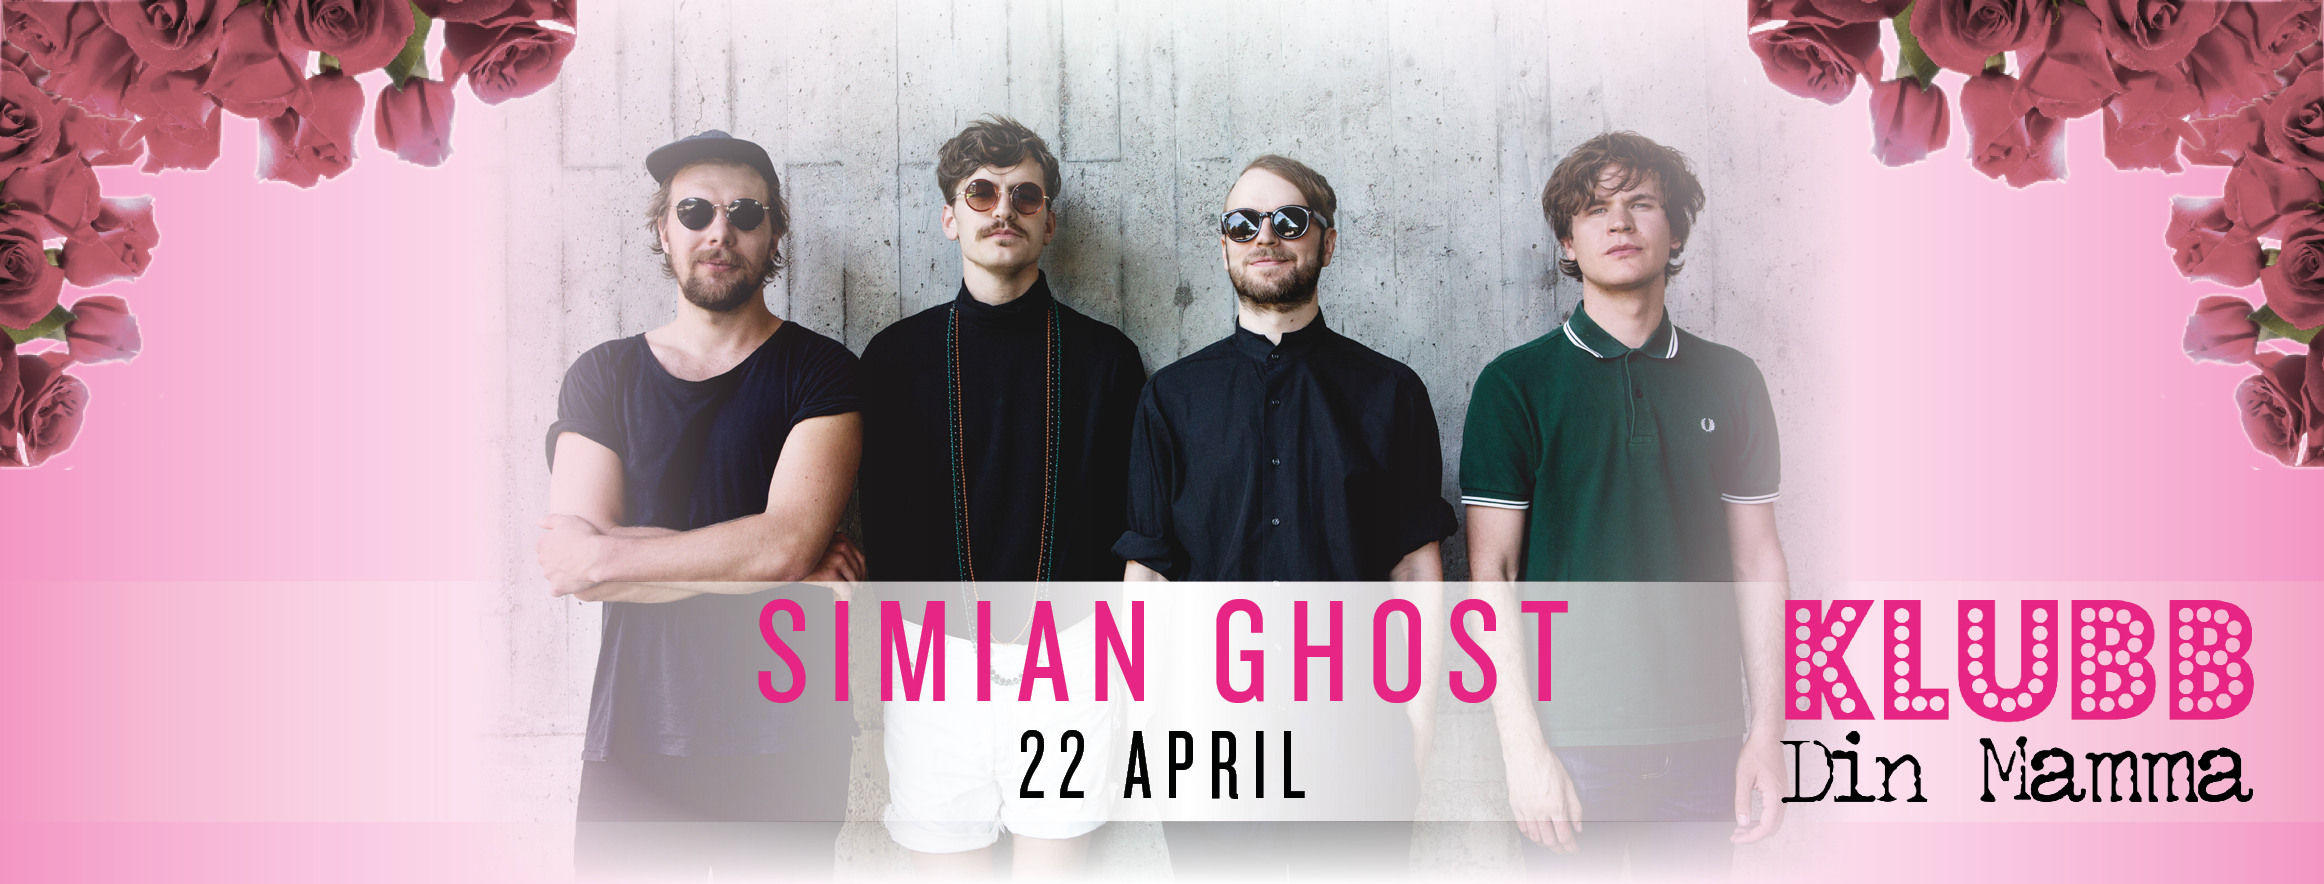 Simian Ghost - 22 april